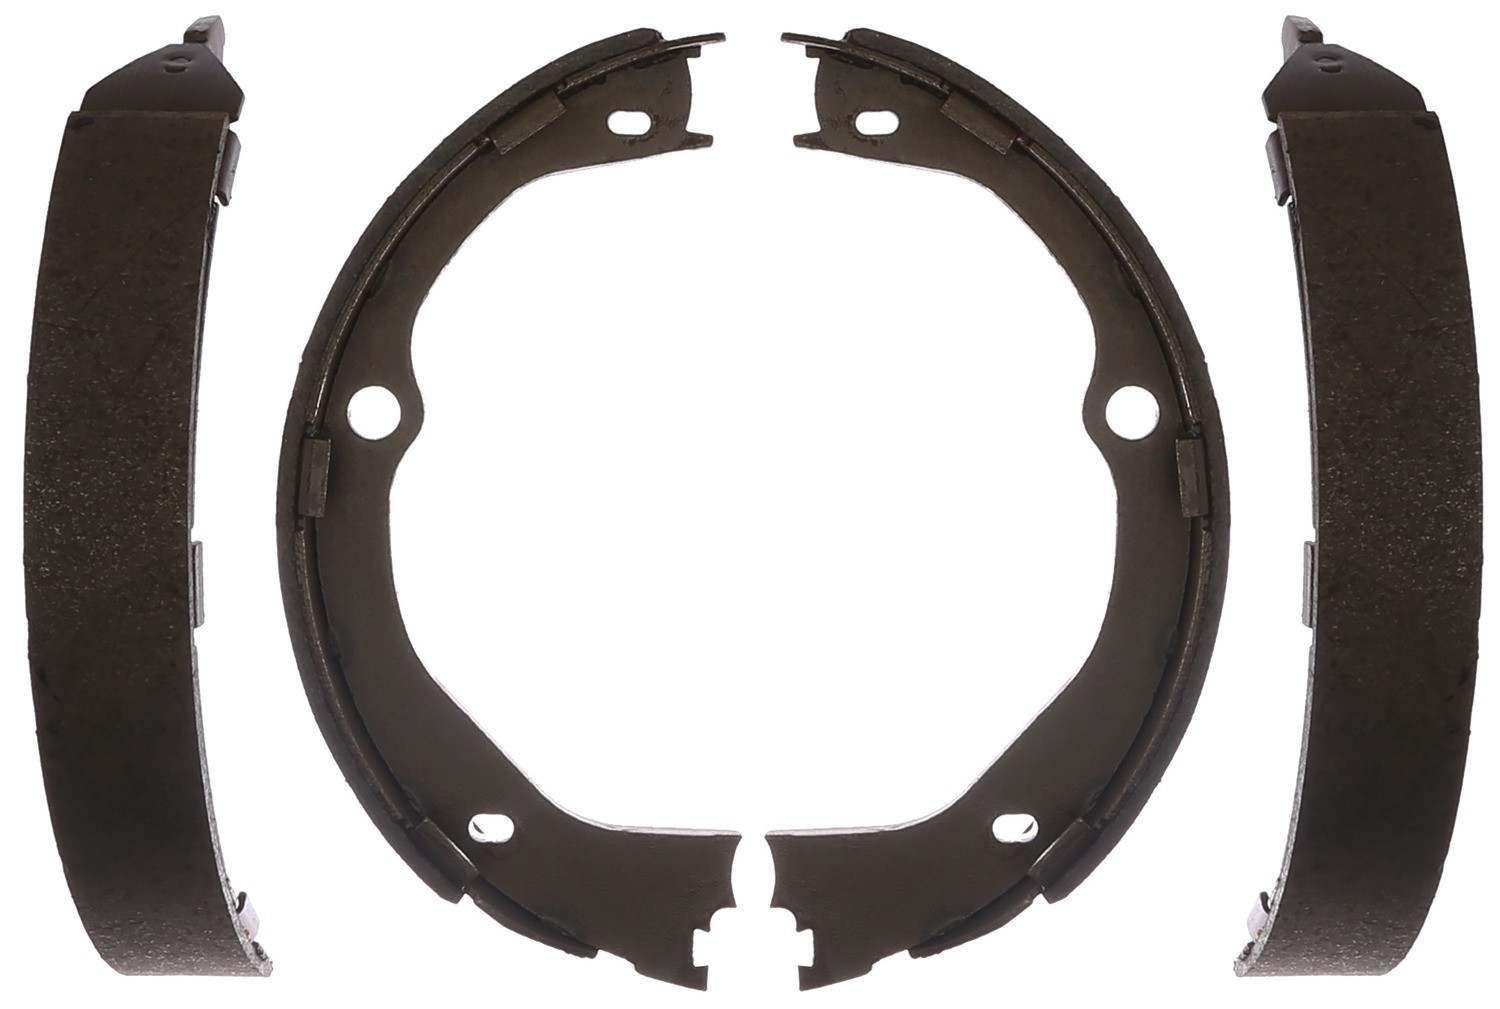 ACDELCO GOLD/PROFESSIONAL BRAKES - Bonded Parking Brake Shoe - ADU 171051B